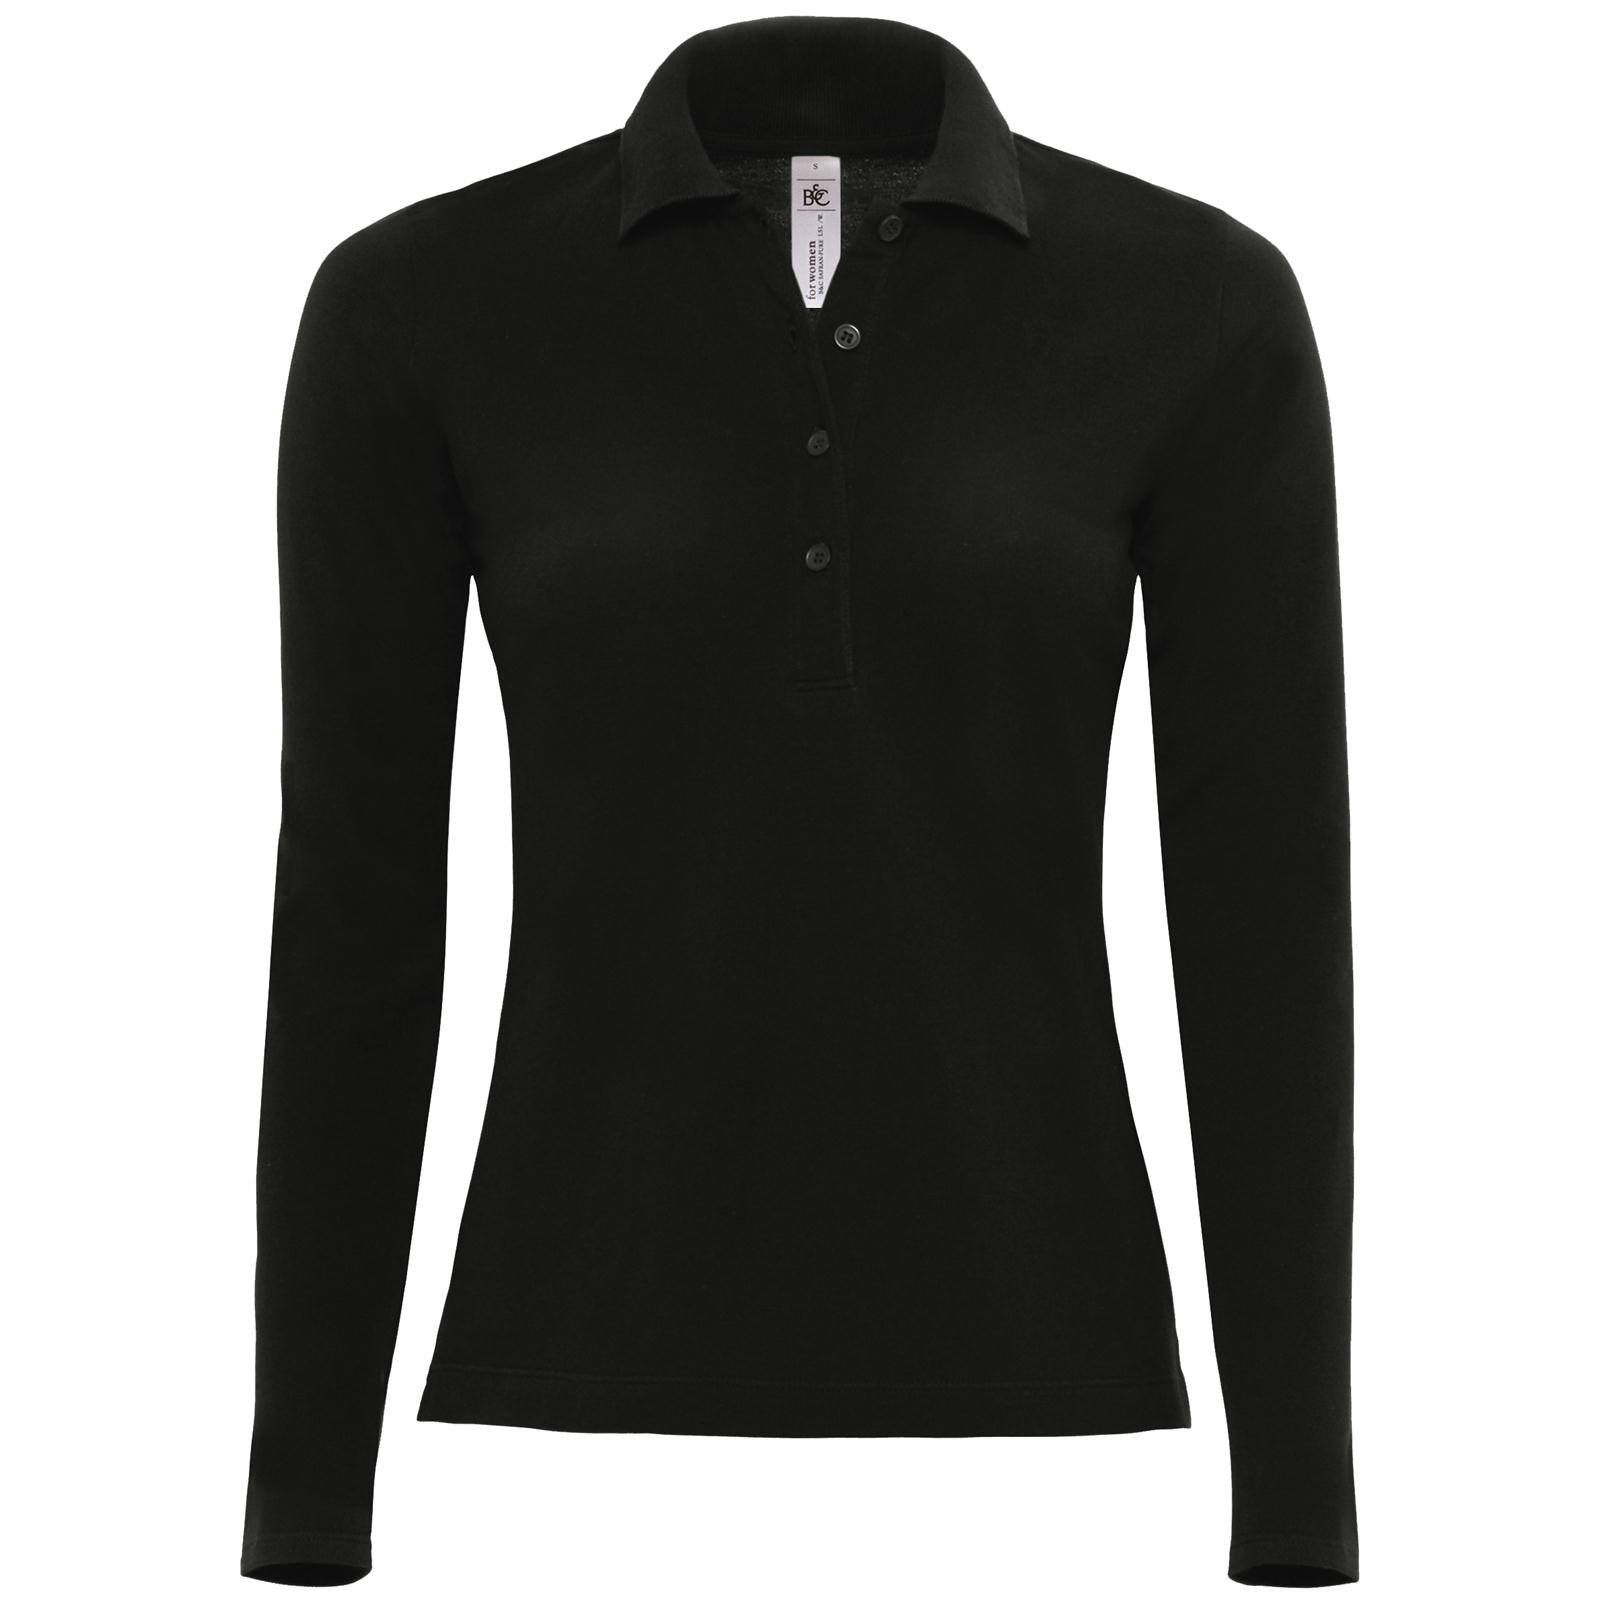 Find the Women's Polo shirt you will wear on all occasion at Lacoste Onlineshop. Browse the range of Lacoste Women's Polos in Long & Short Sleeve styles. Find the Women's Polo shirt you will wear on all occasion at Lacoste Onlineshop. Browse the range of Lacoste Women's Polos in Long & Short Sleeve .